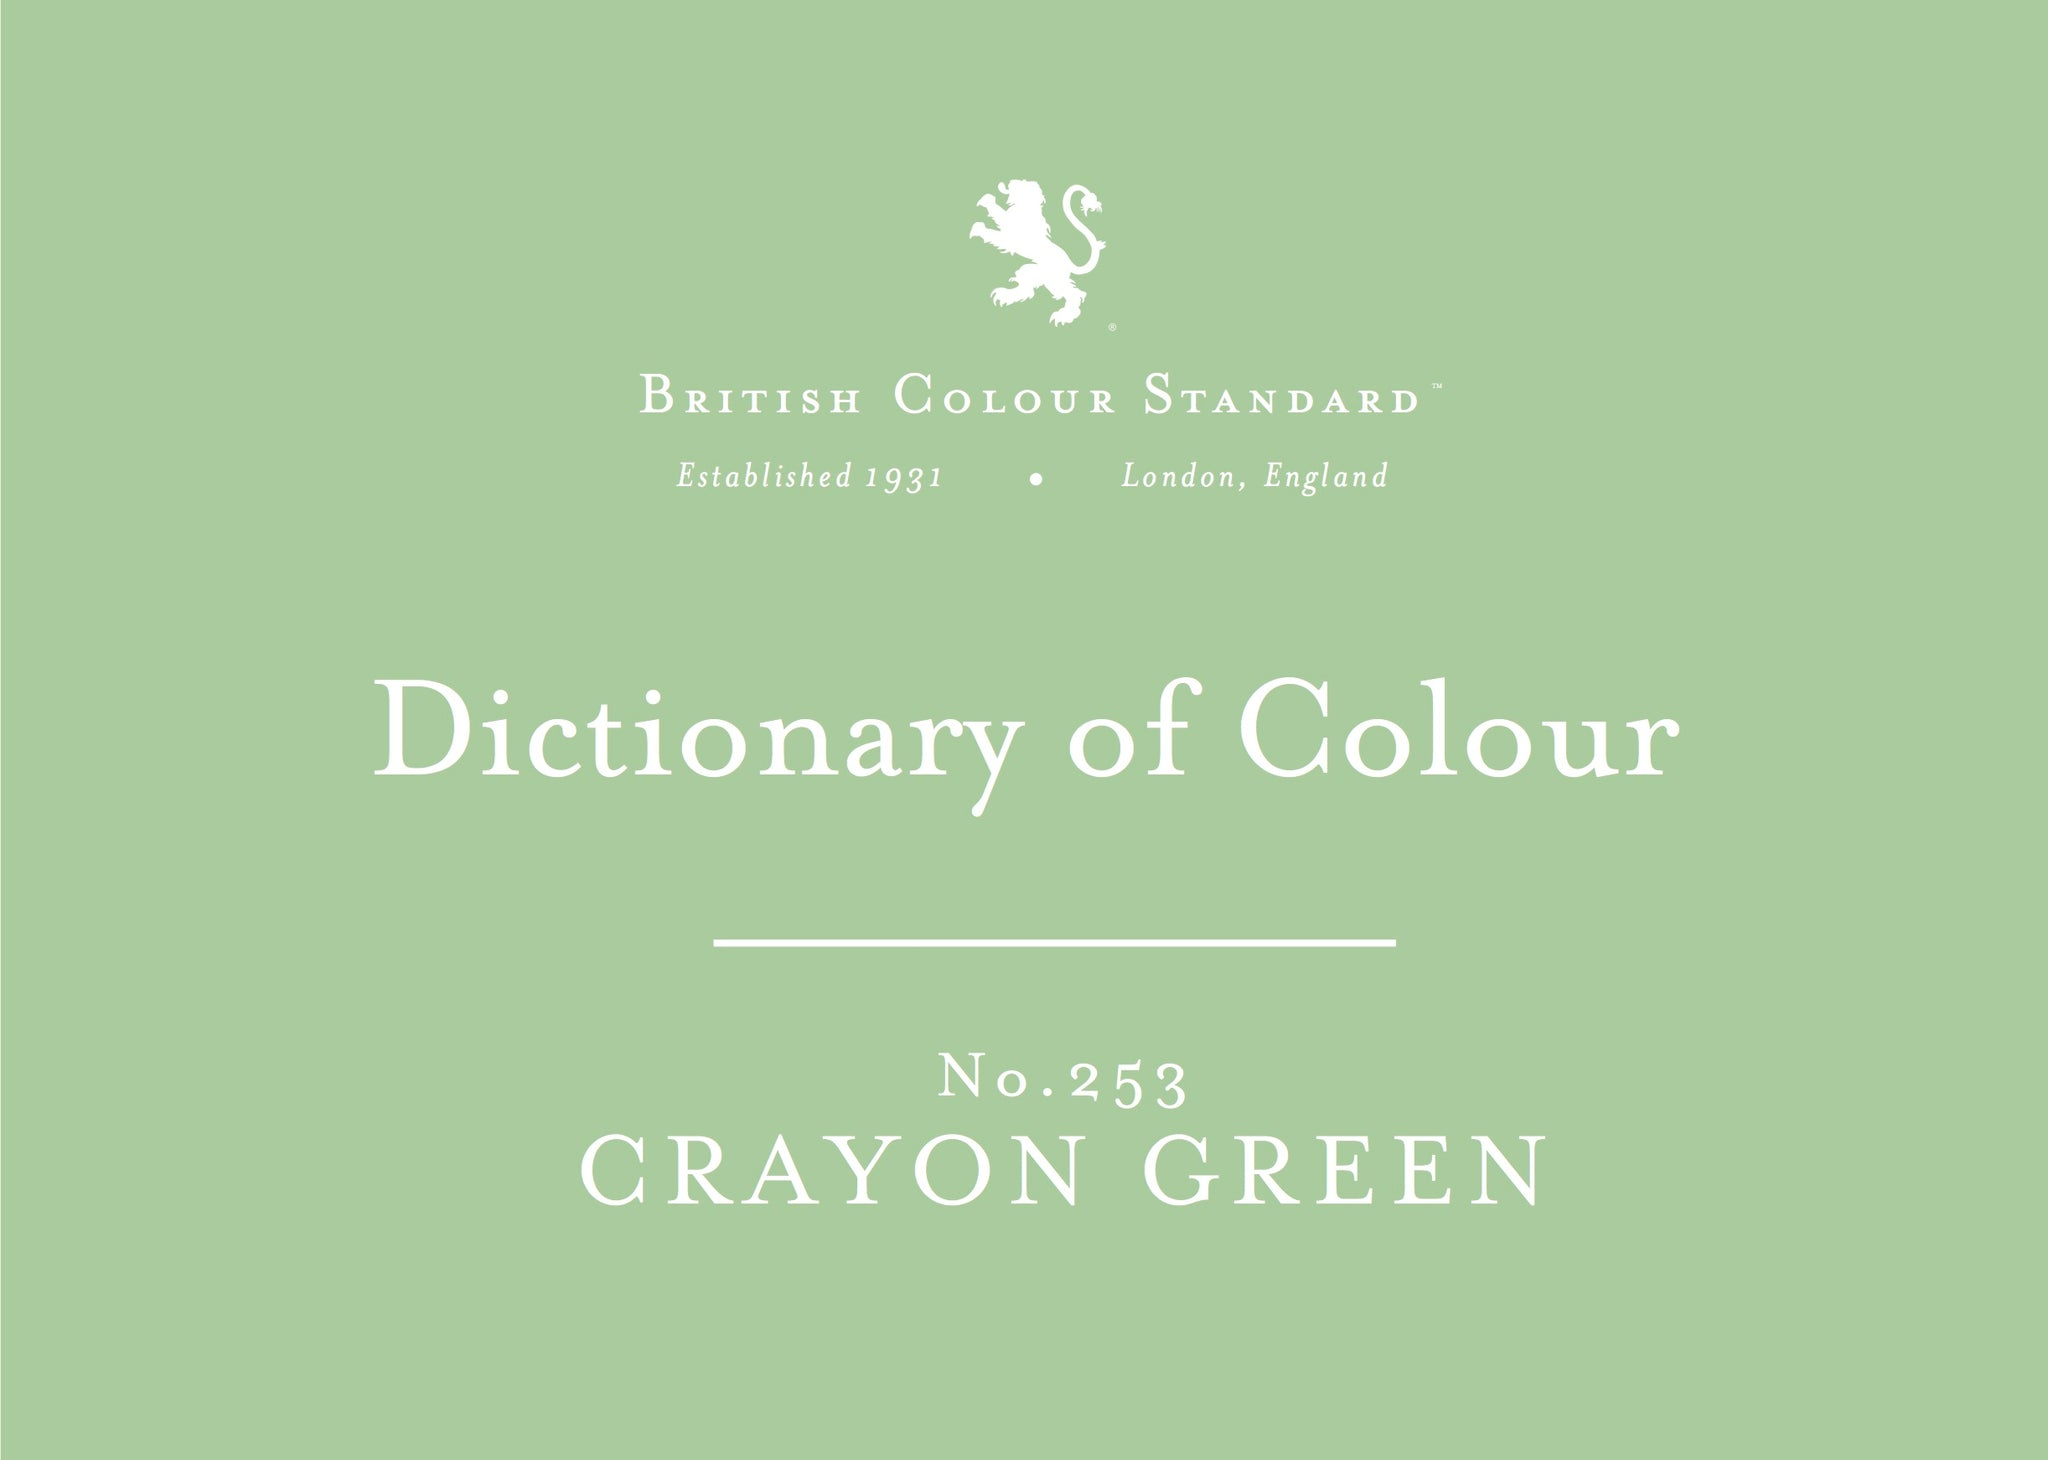 BRITISH COLOUR STANDARD - Crayon Green No. 253